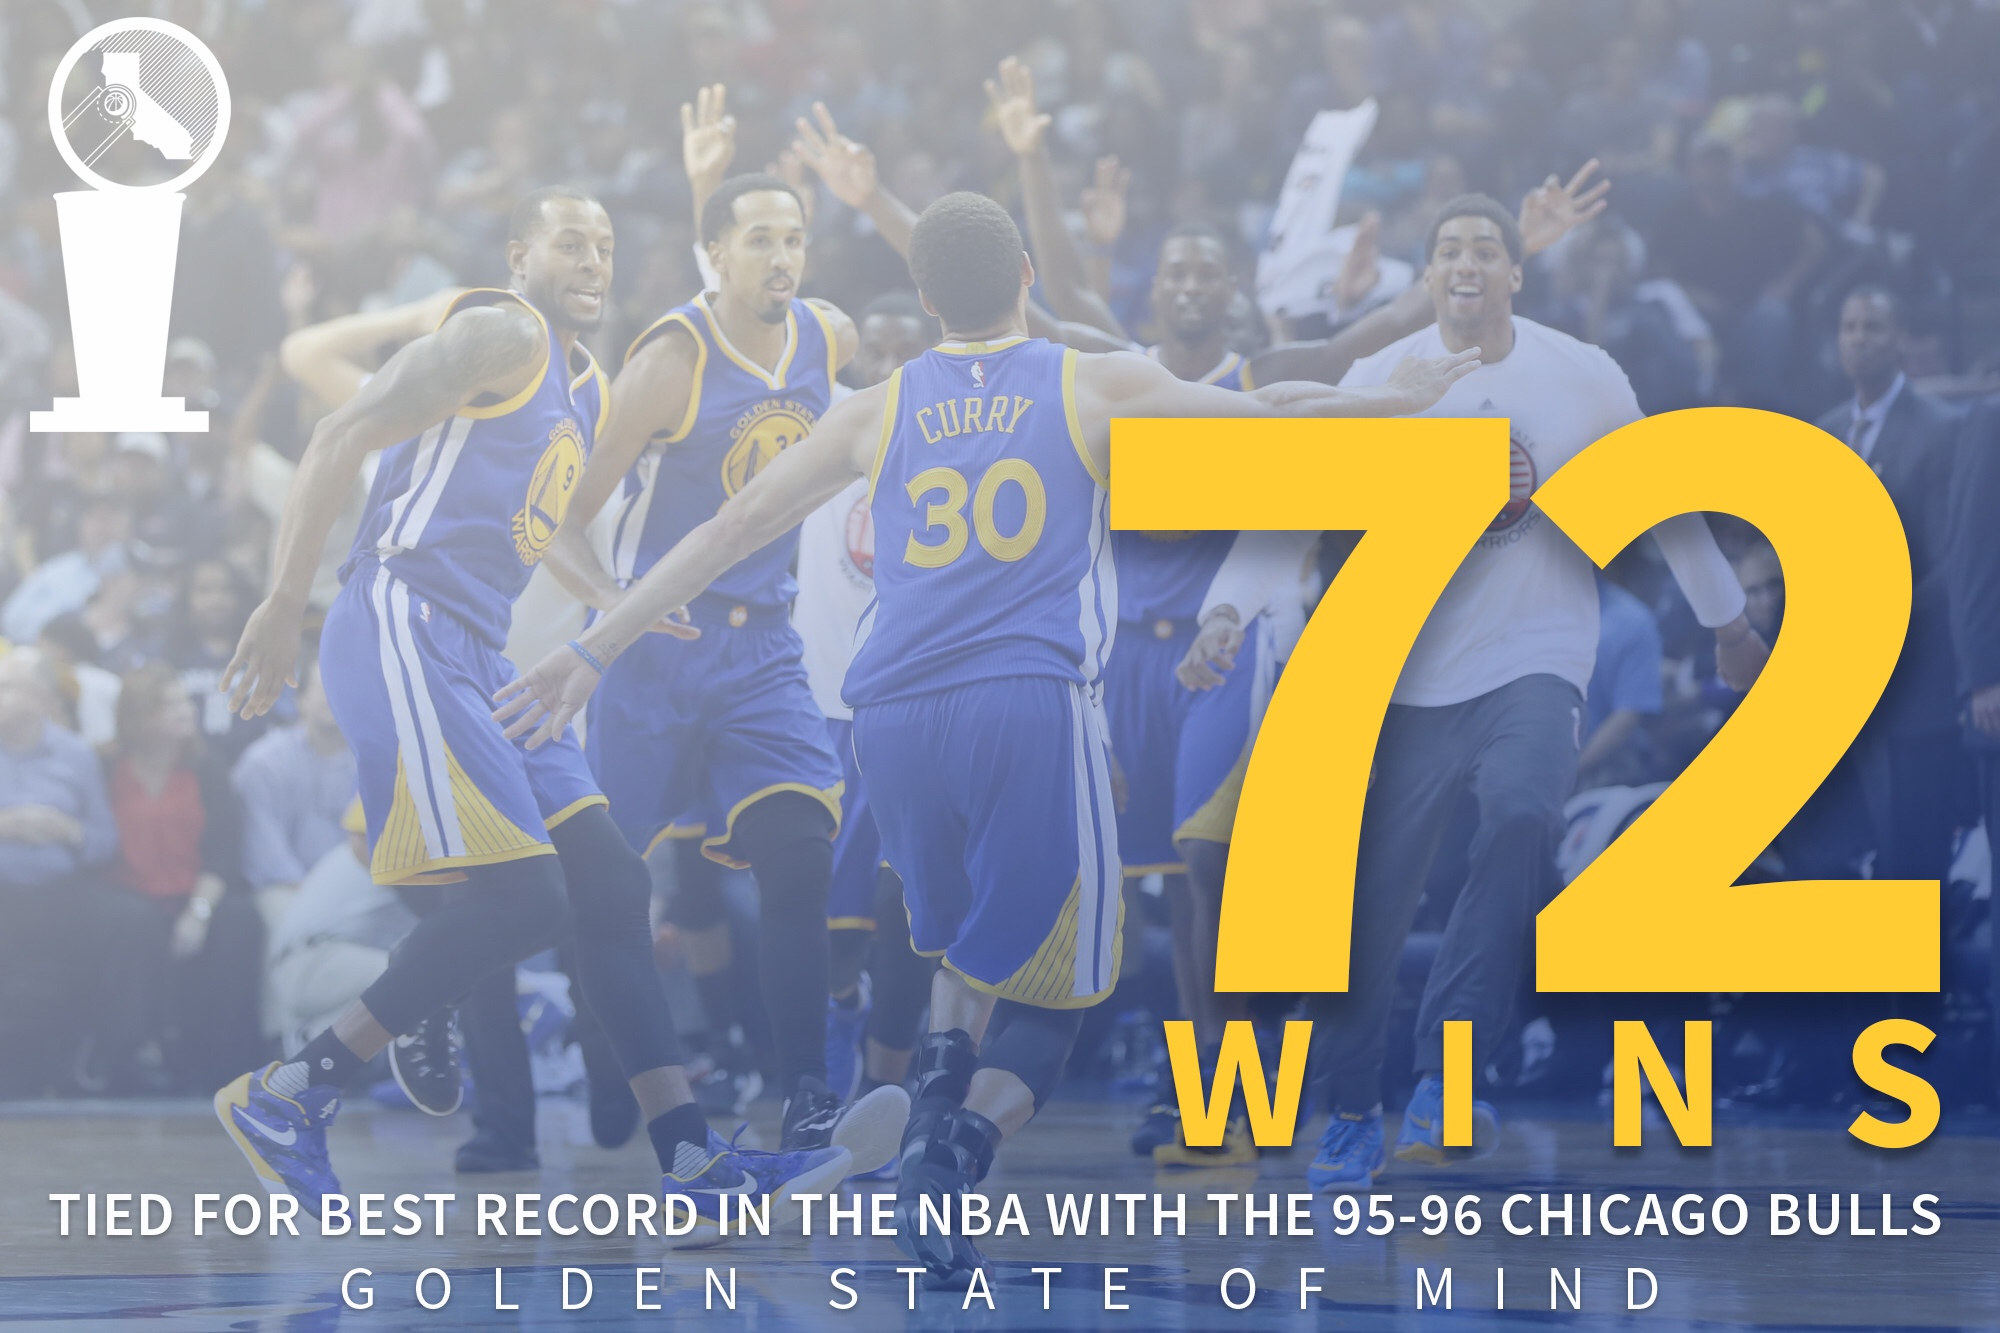 e0d359c8972 Golden State Warriors tie NBA record with 72 wins - Golden State Of Mind